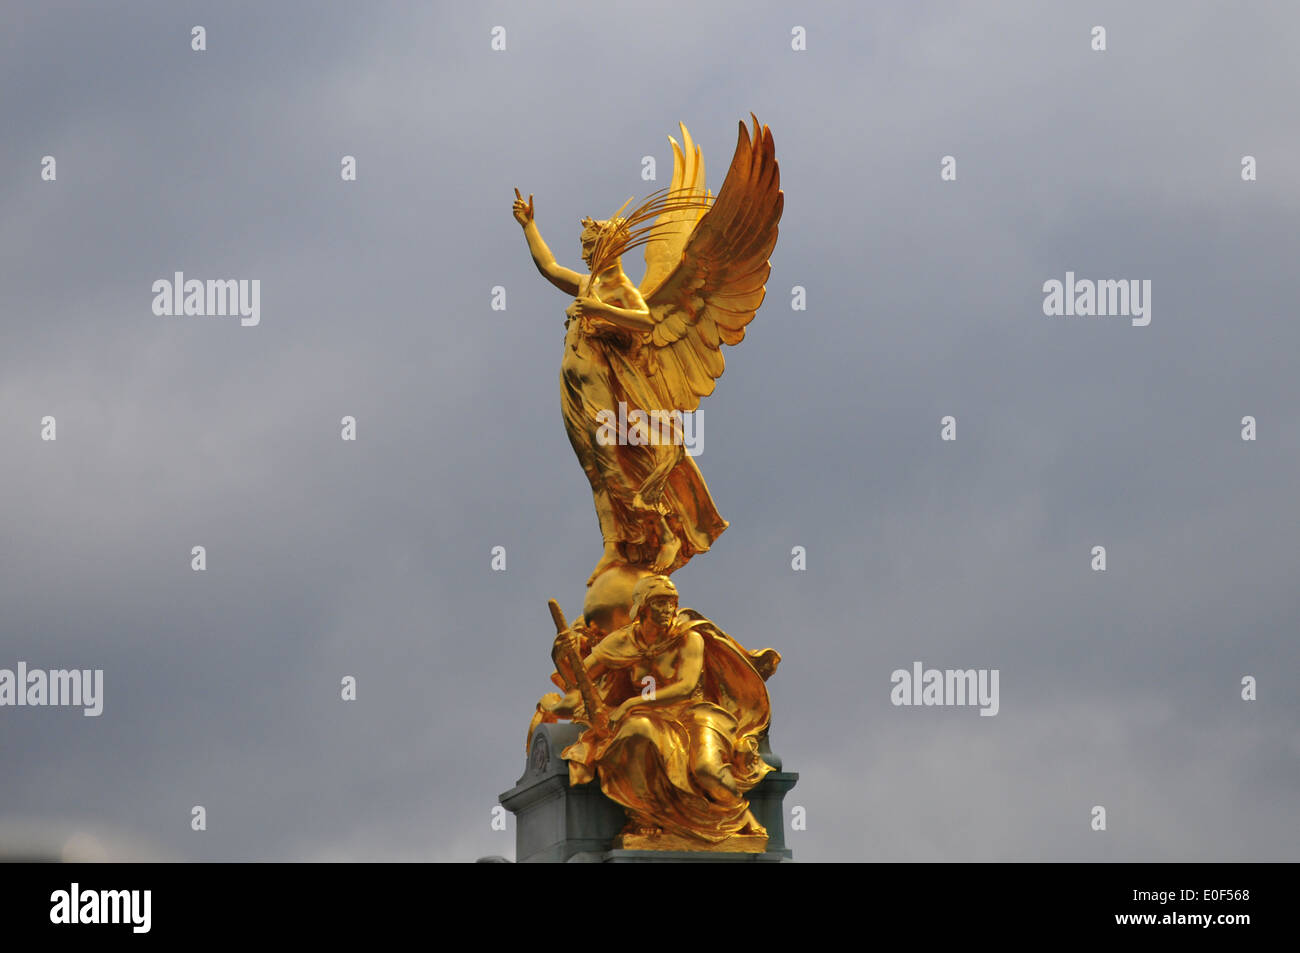 Golden wisdom statue in front of Buckimgham palace - Stock Image